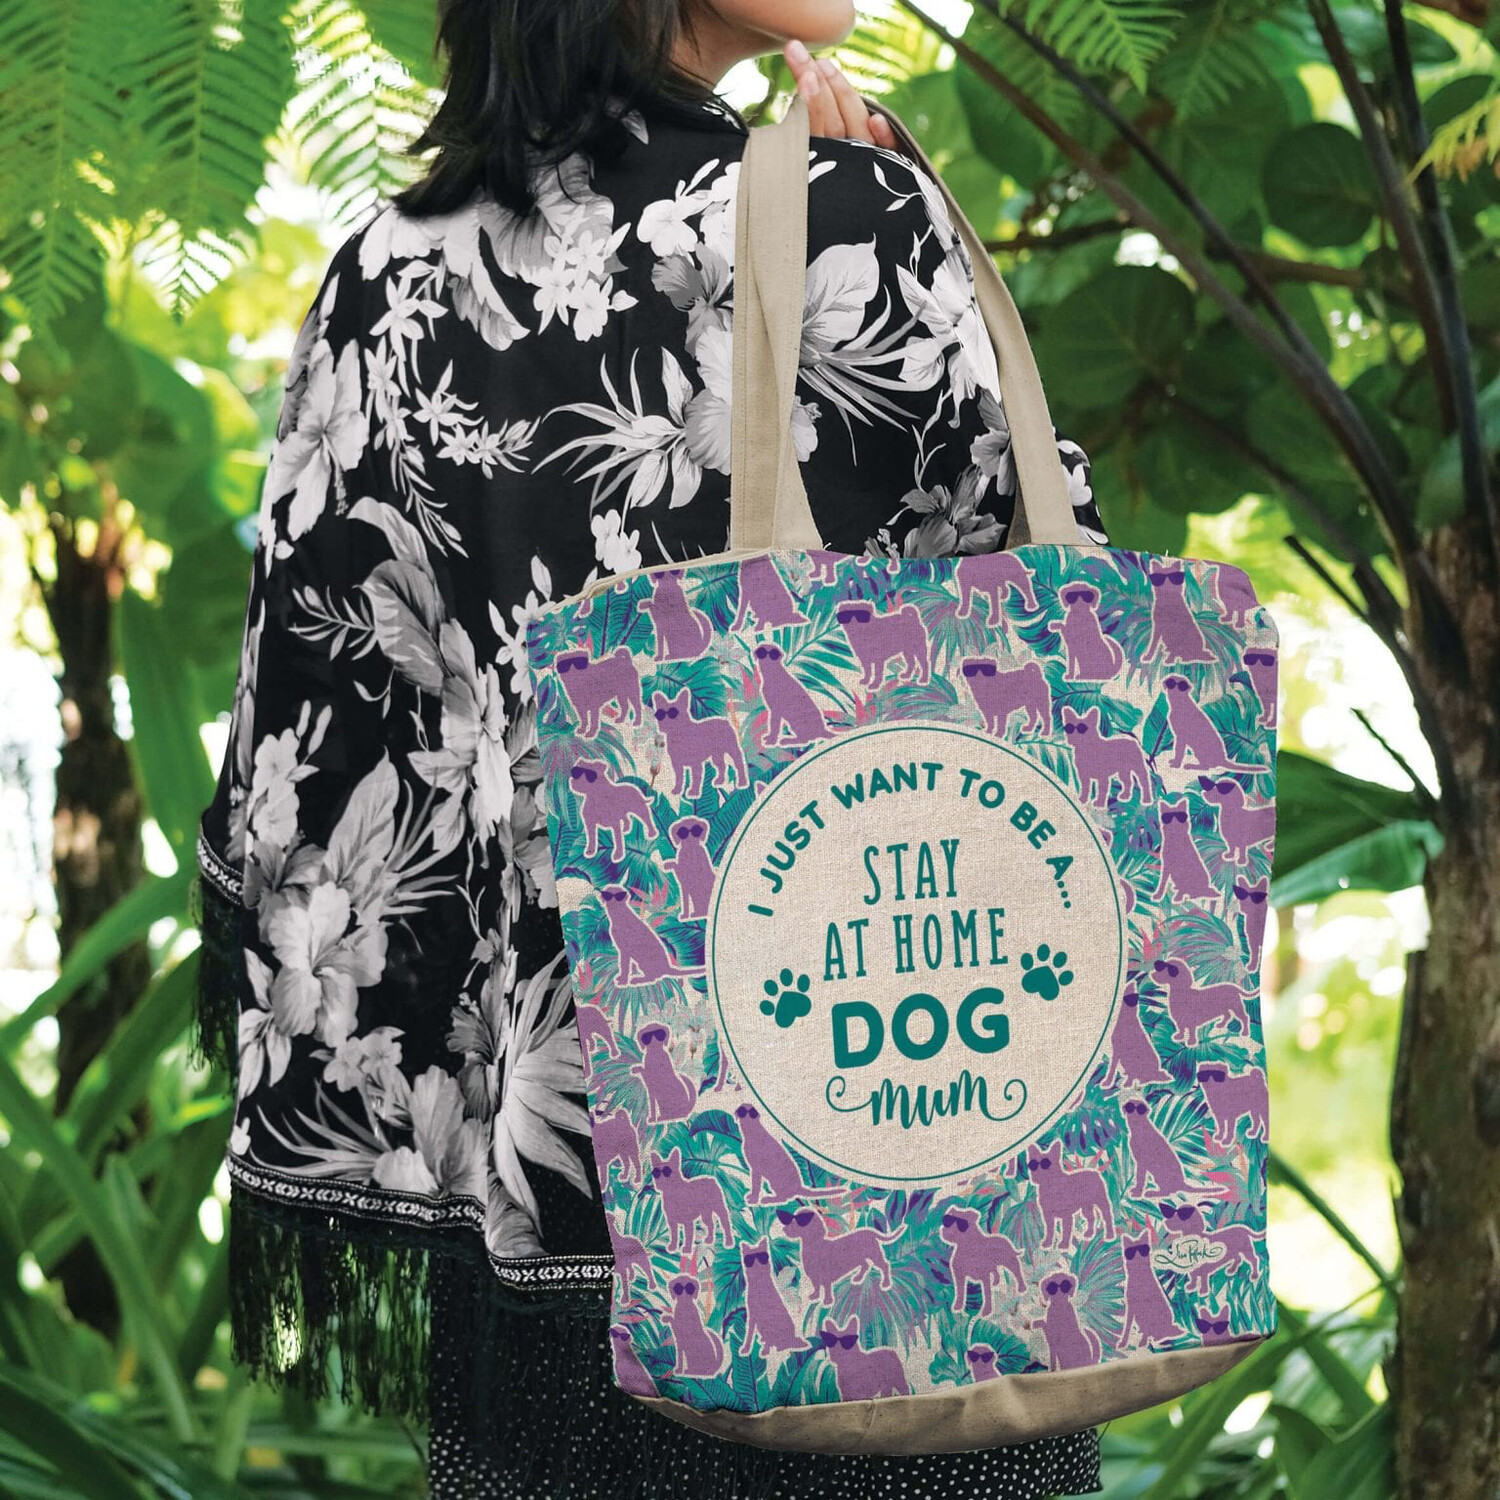 Lisa Pollock Linen/Poly Shopping Tote - I Just Want To Be A Stay At Home Dog Mum